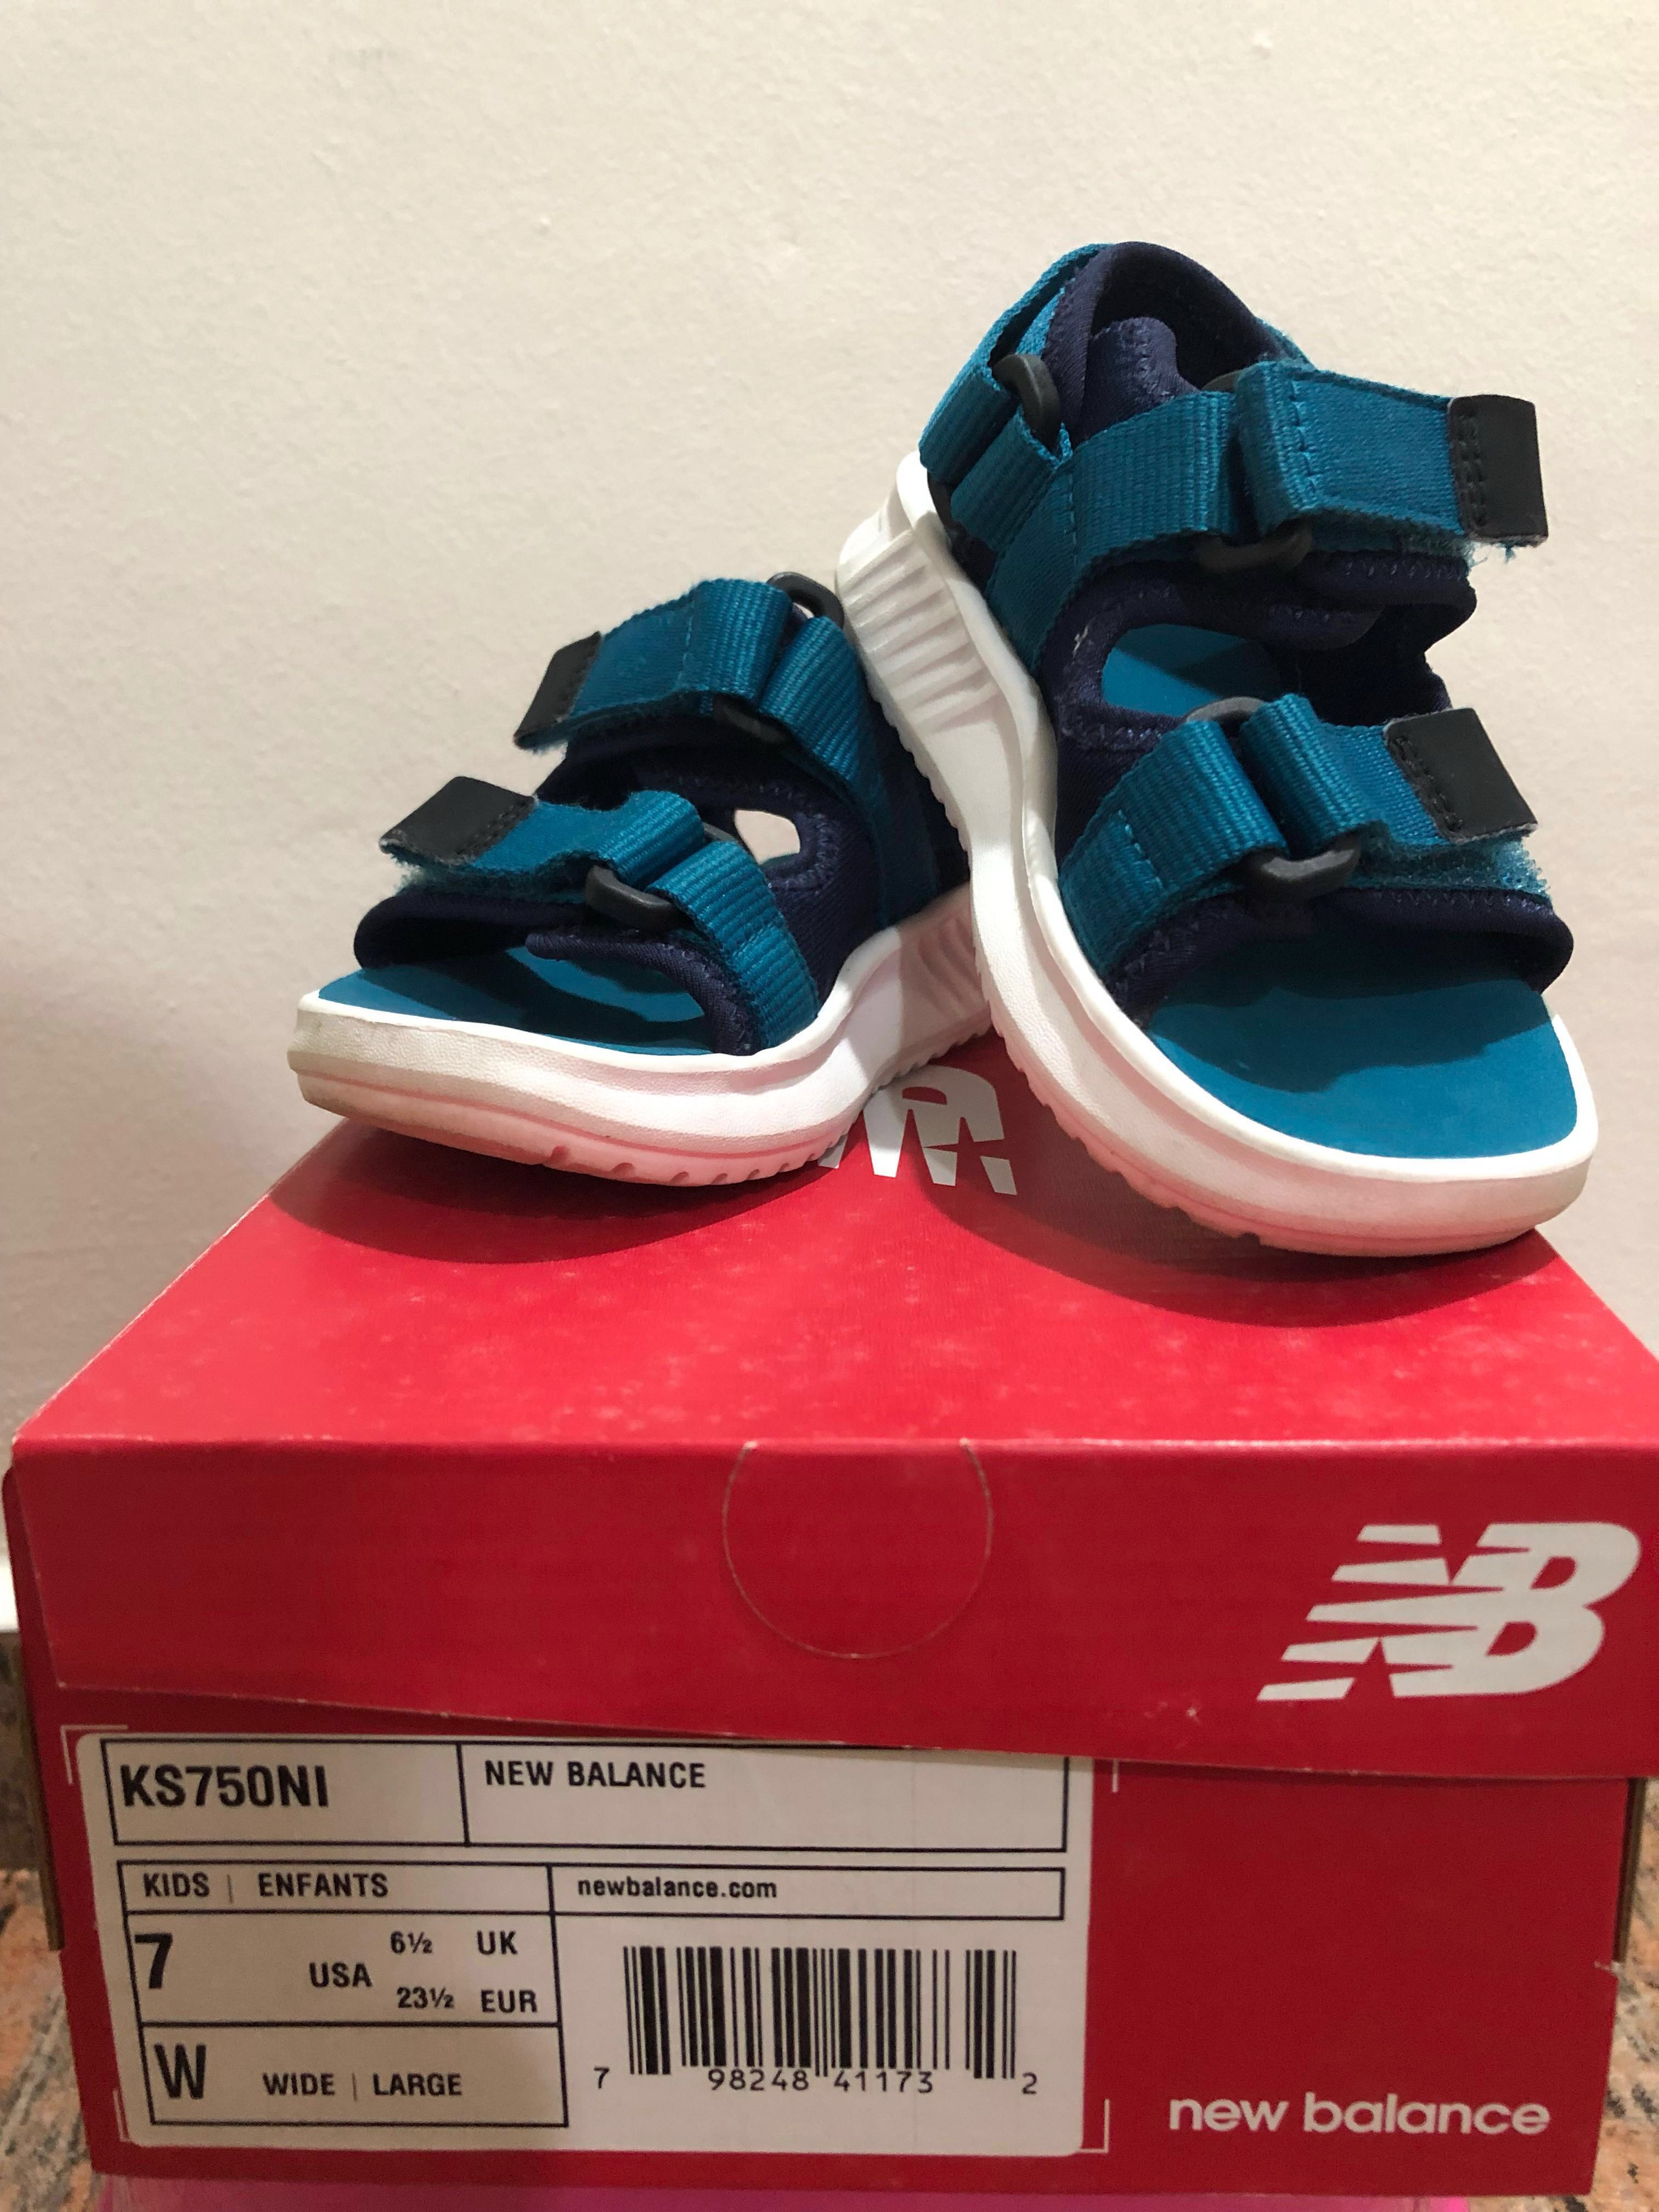 3b43e544 New Balance Shoes For Toddler size US7